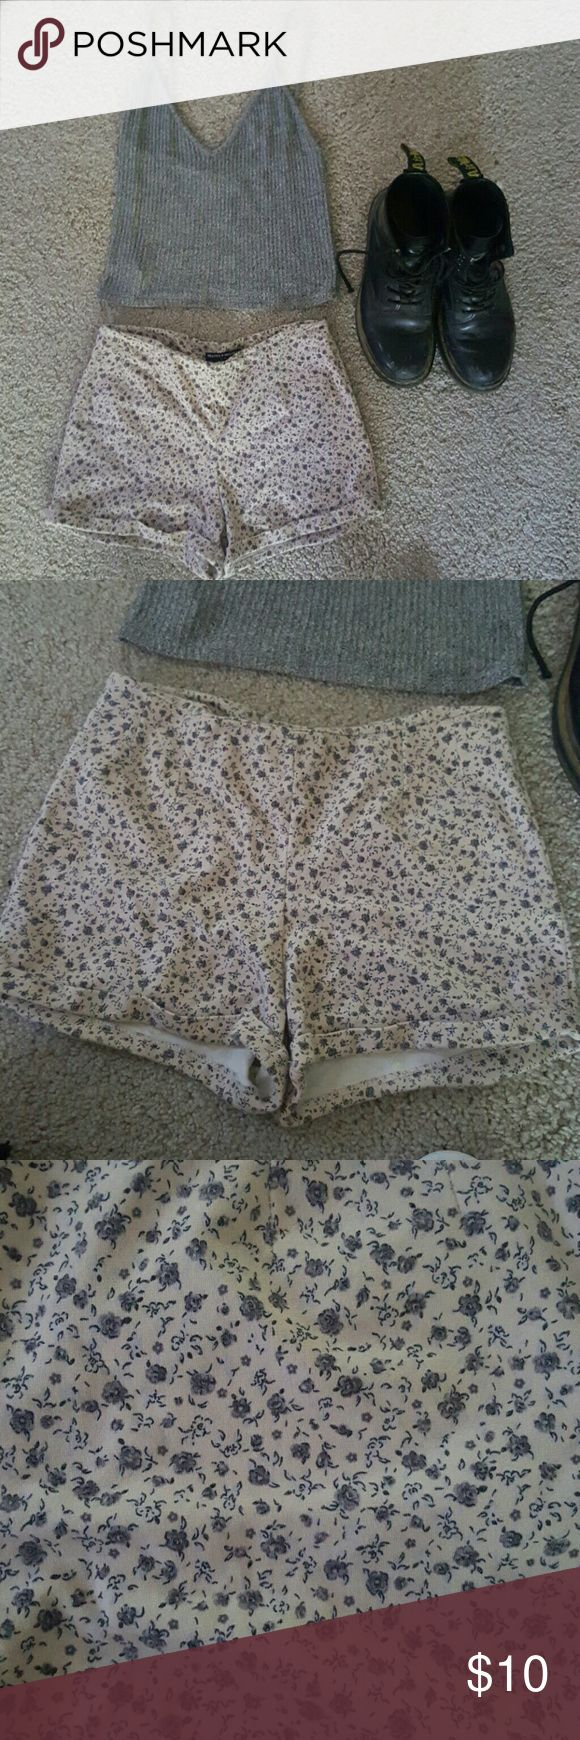 Very rare brandy melville chino cloth shorts Grey and tan very soft never worn Brandy Melville Shorts